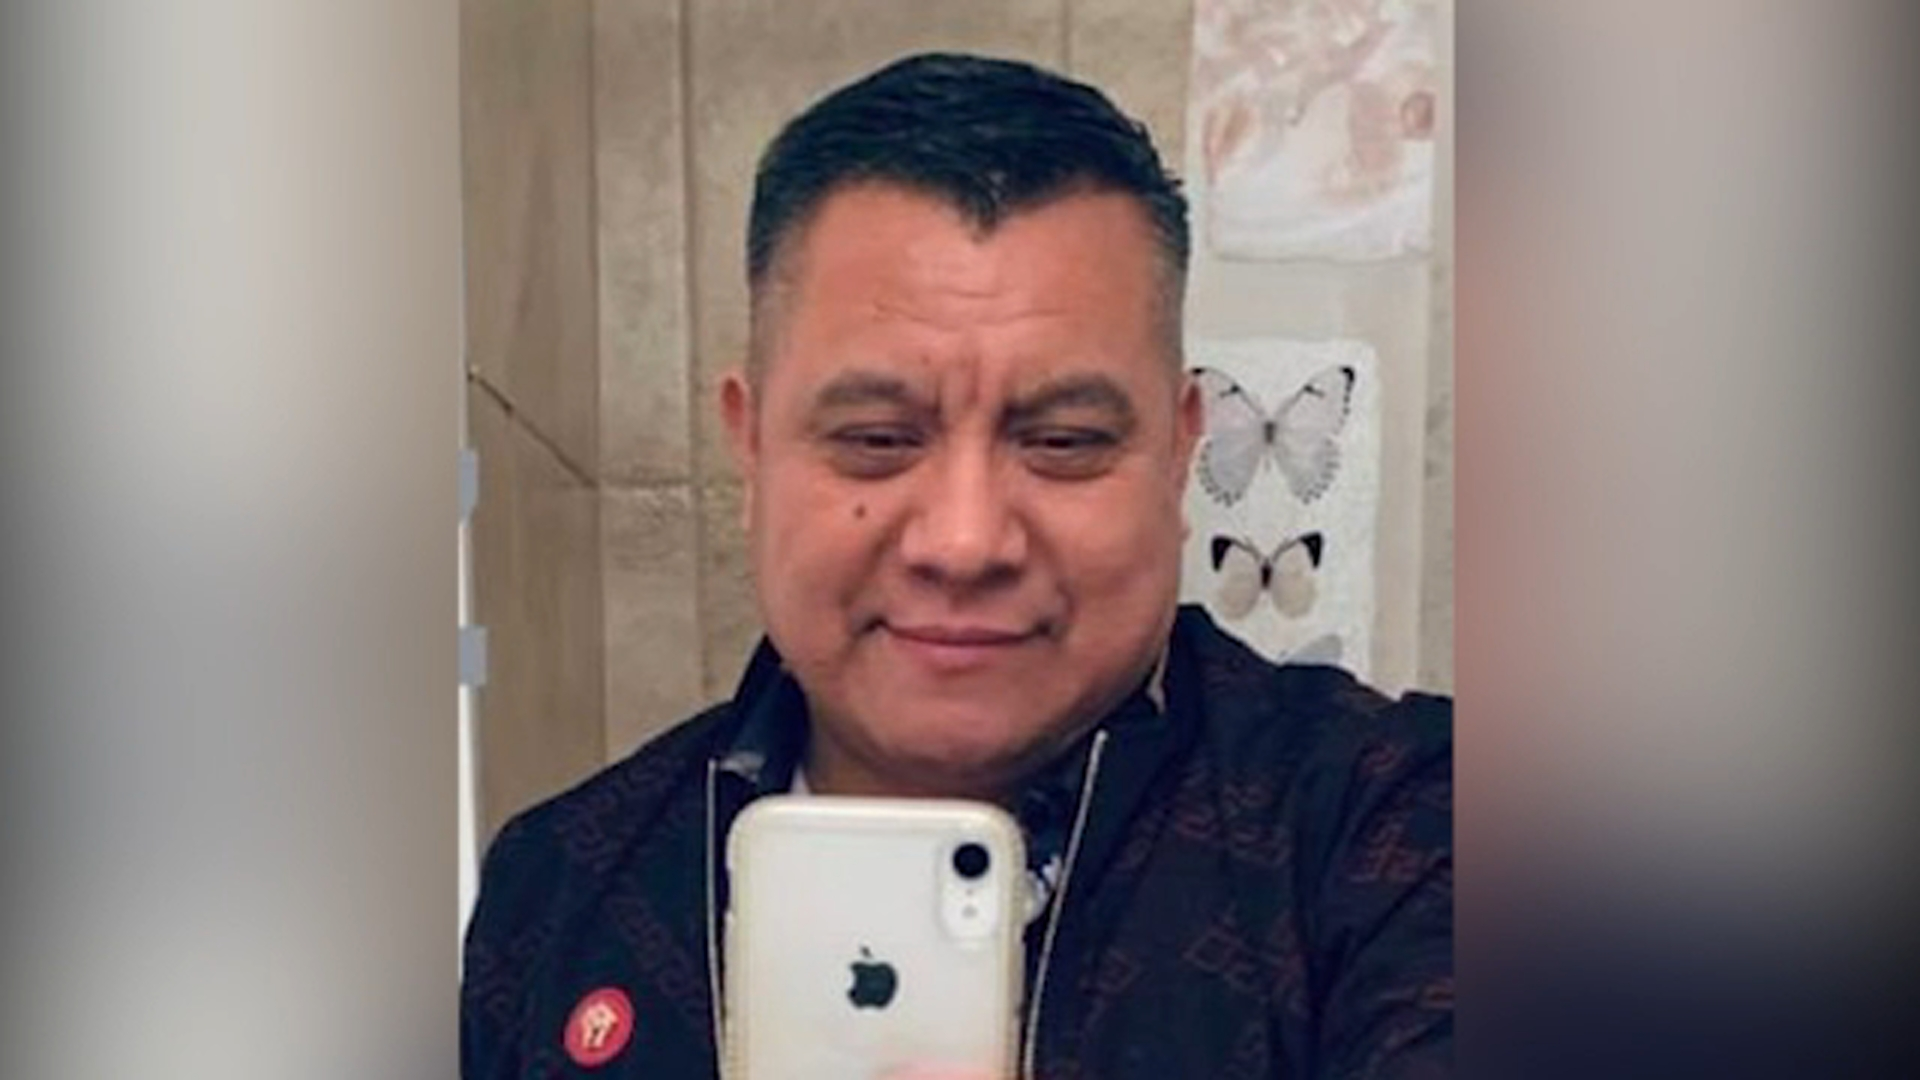 Ruben Martinez Yonkers Westchester County Clothing Store Owner Killed Over 30 Hat Abc7 New York